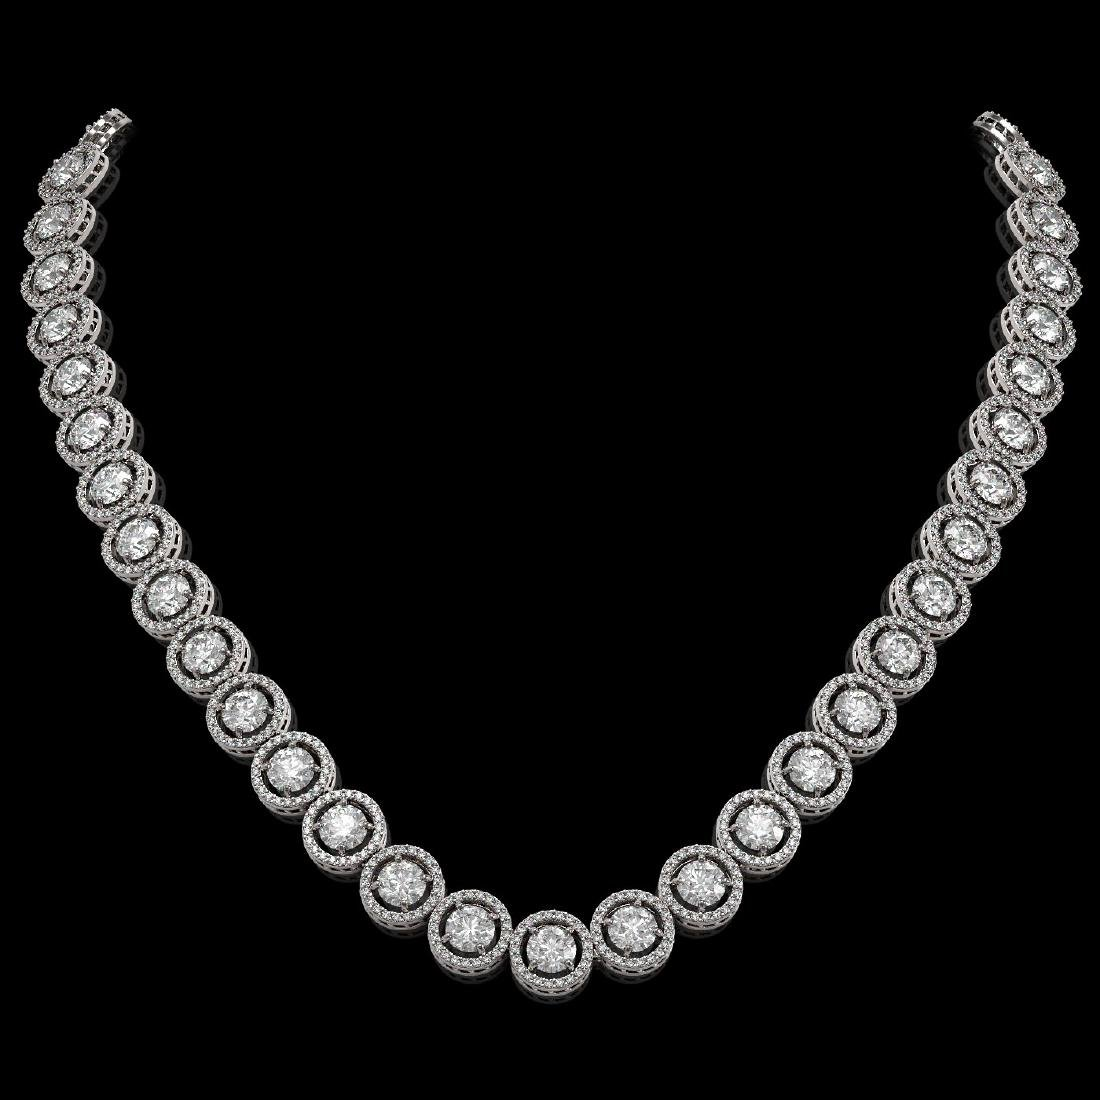 30.78 CTW Diamond Designer Necklace 18K White Gold